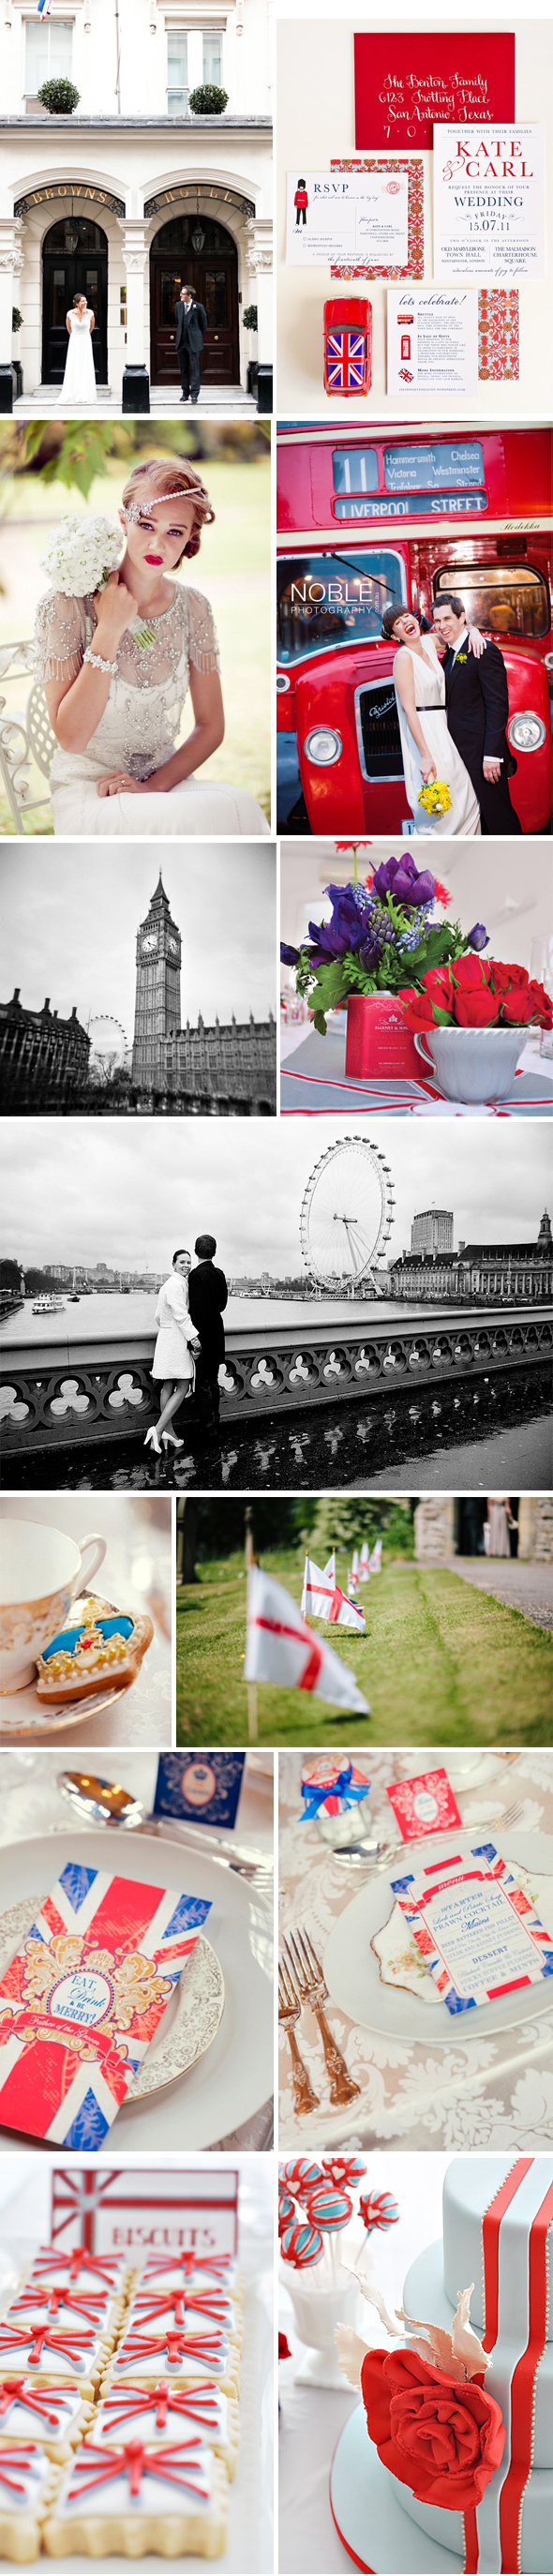 london destination weddings1 London Destination Weddings